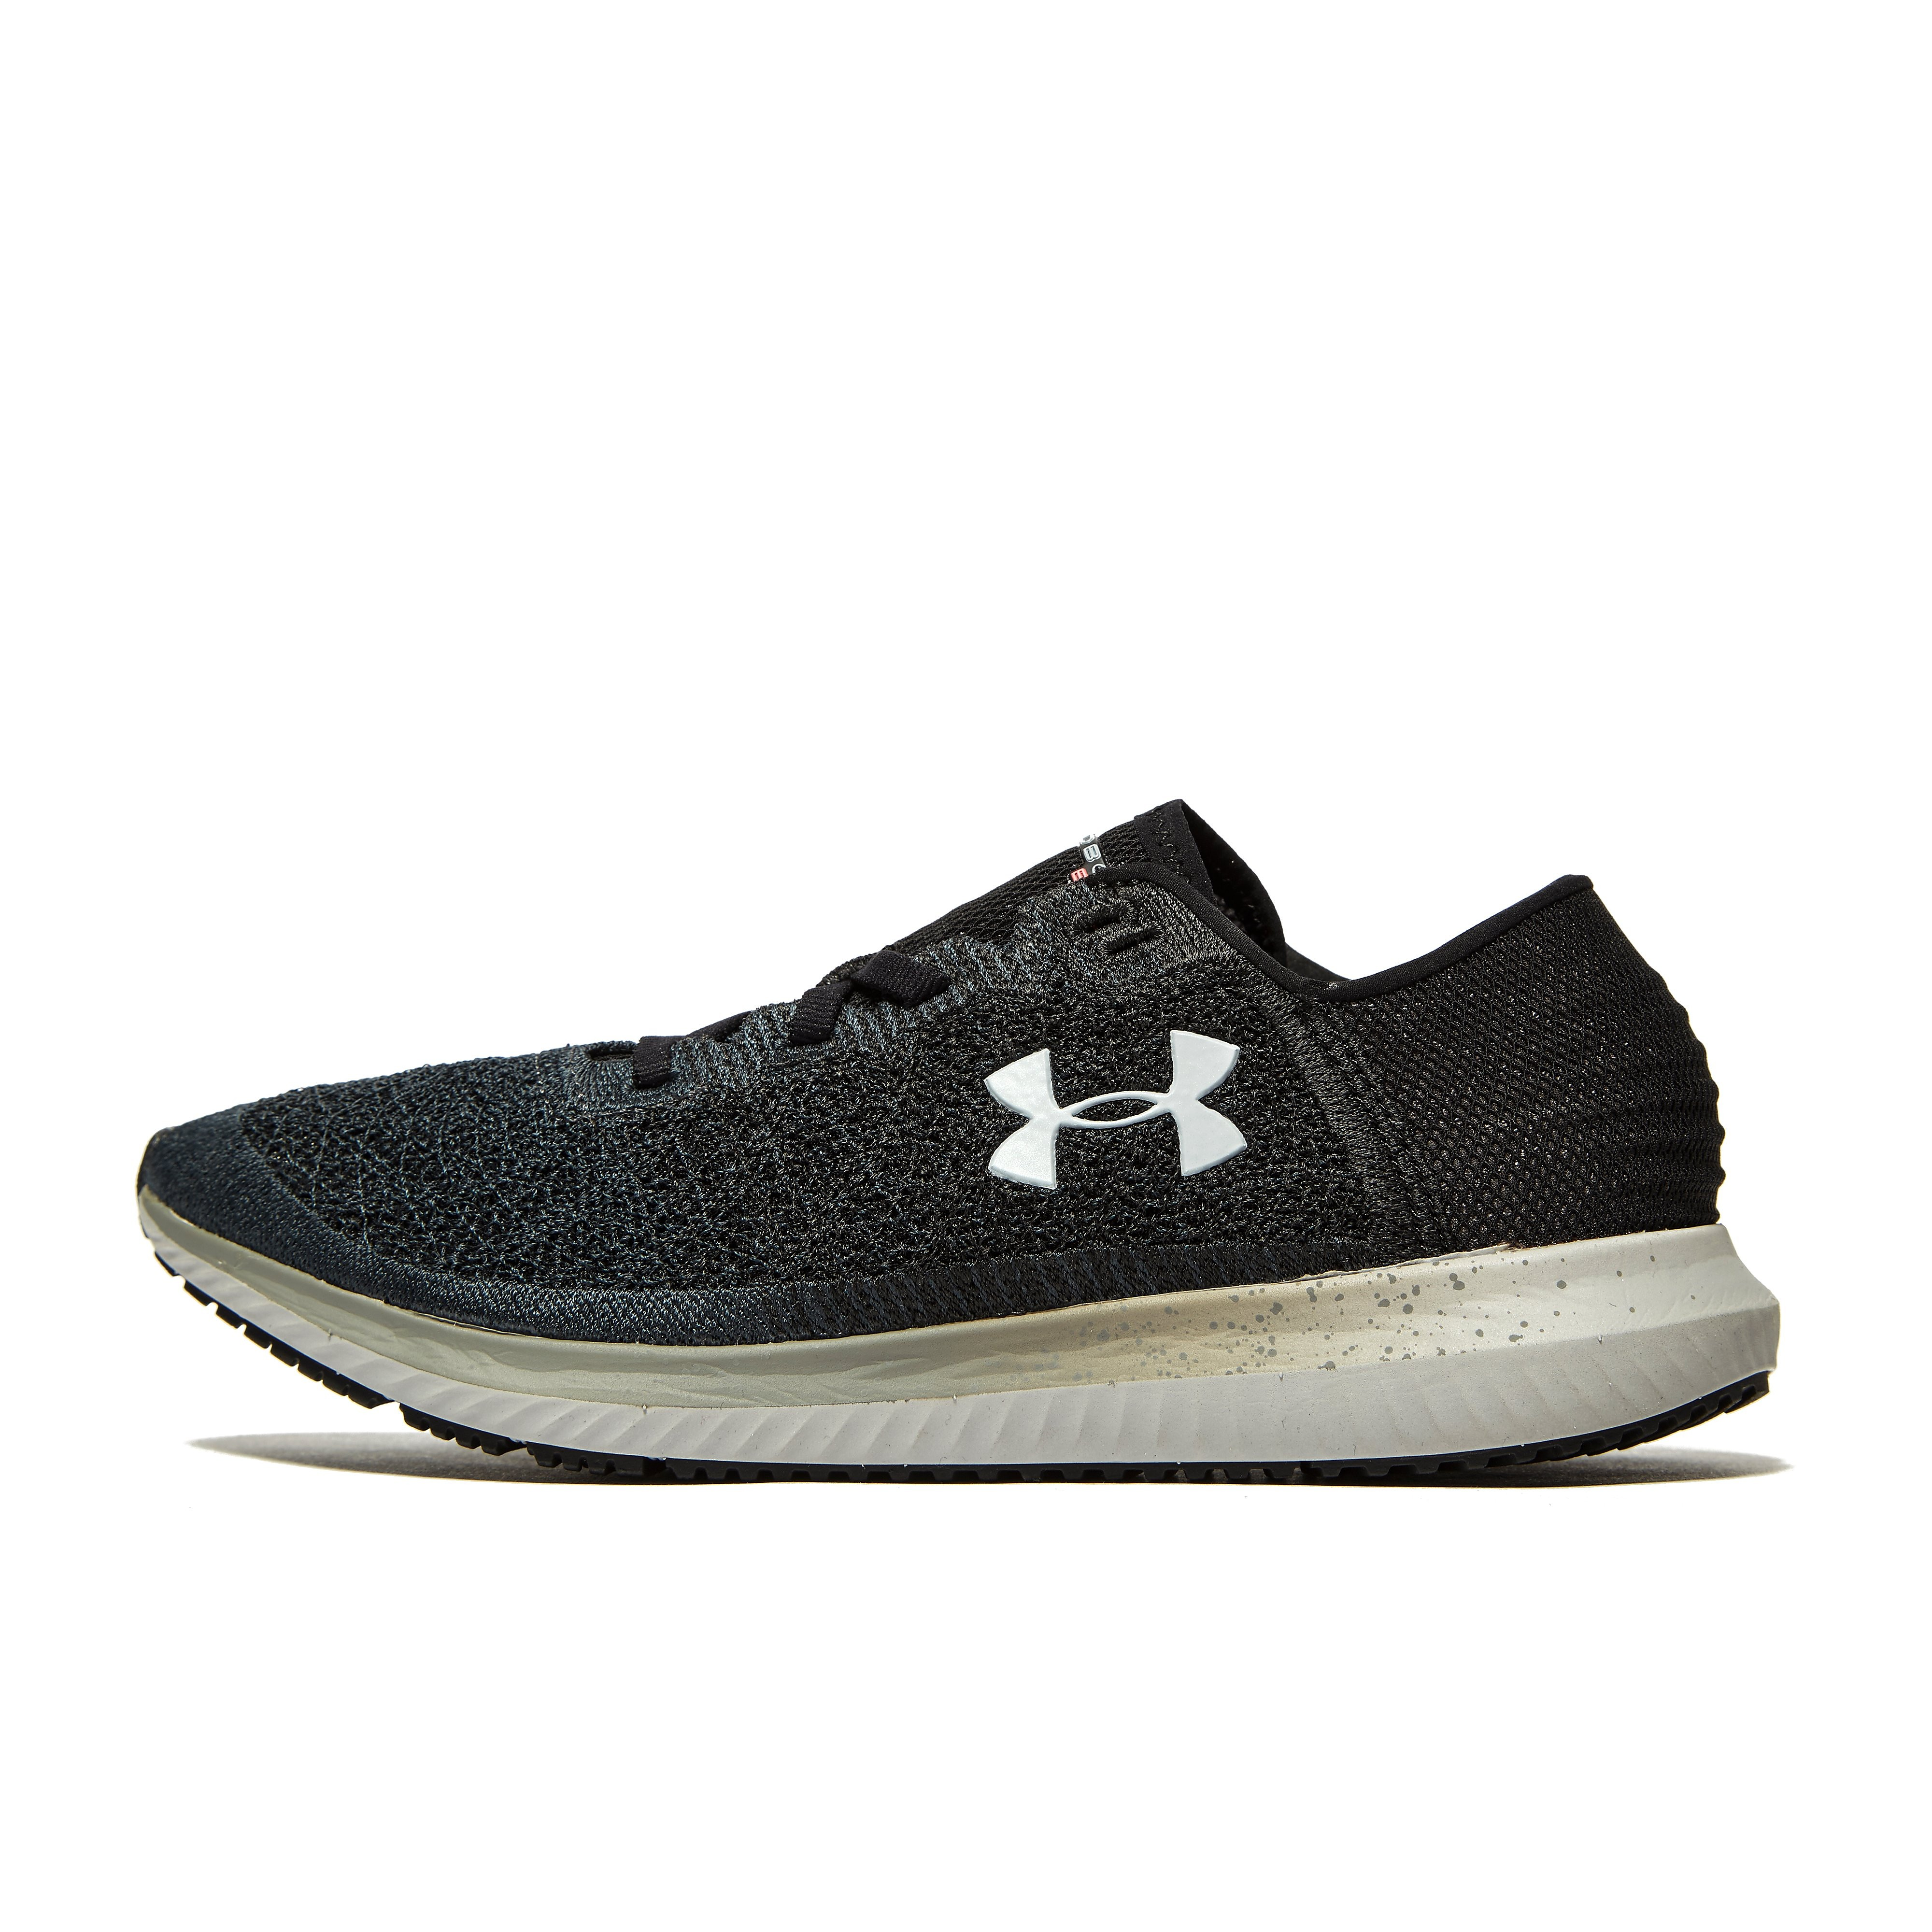 Women's Under Armour Threadborne Blur Running Shoes - Black, Black